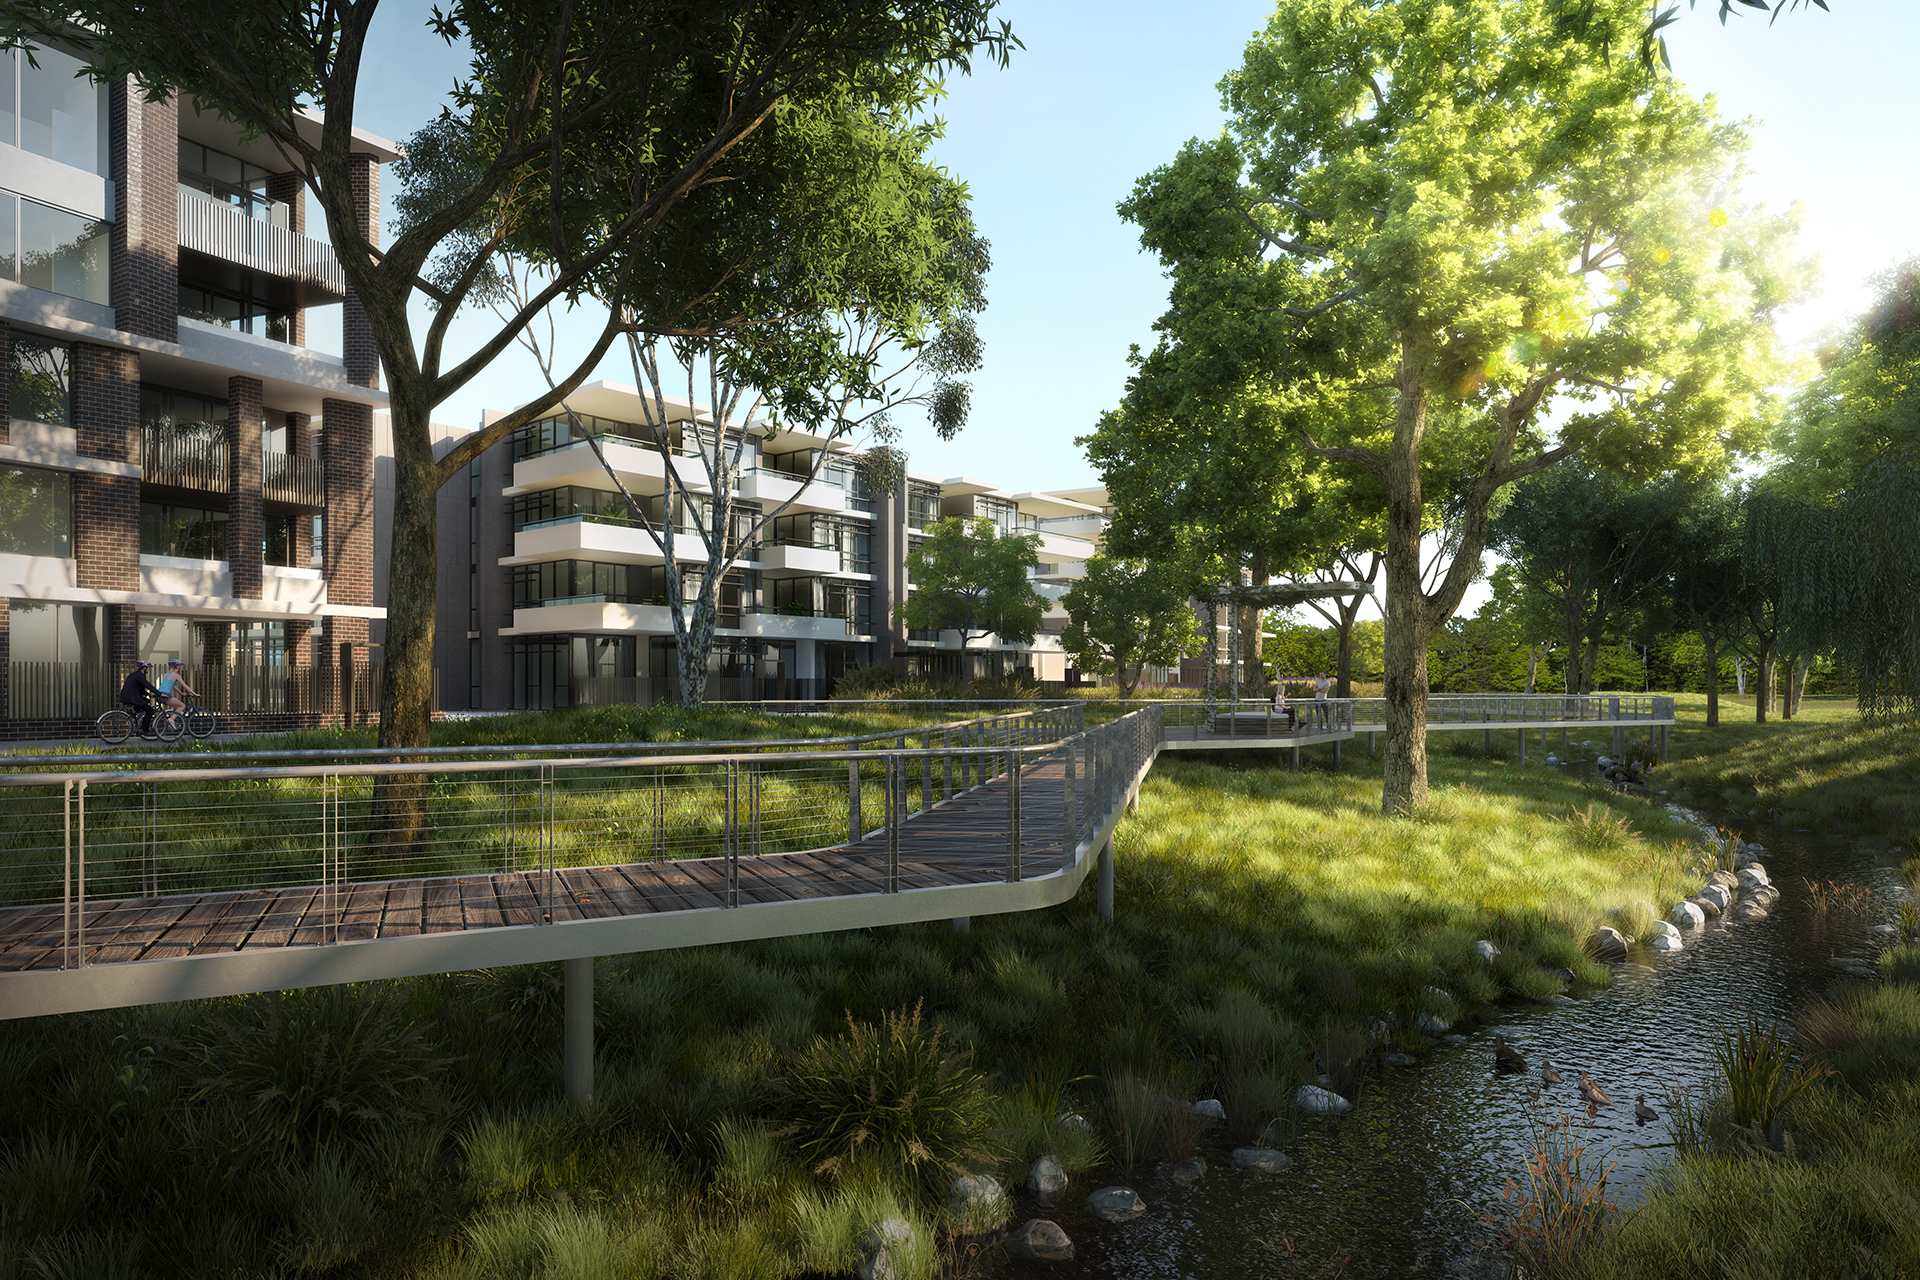 Setting Records in Penrith | CABE